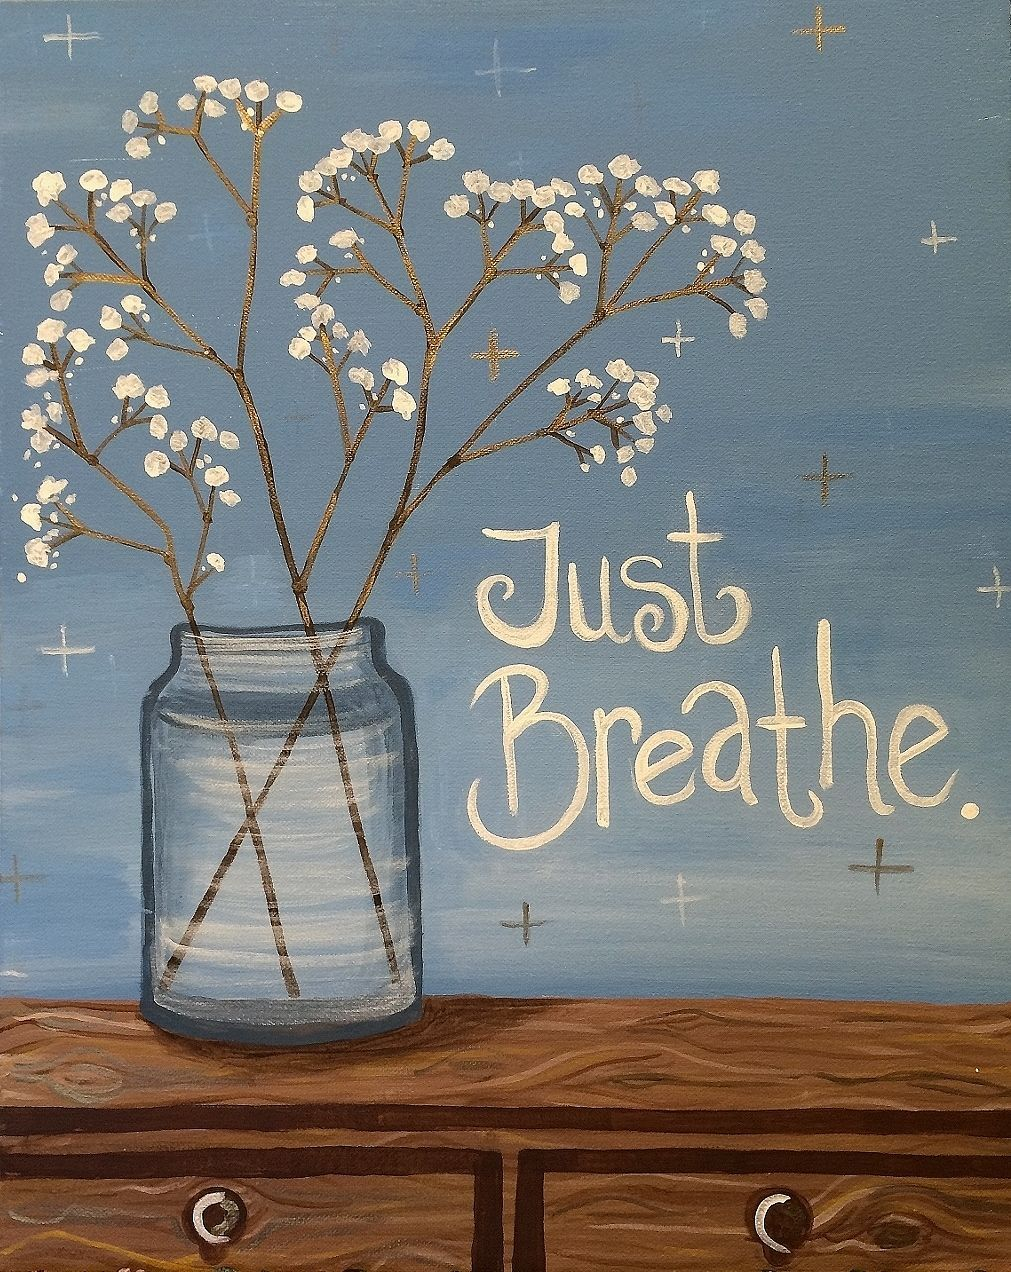 Come To Pinot S Palette For A Relaxing Evening And Paint Just Breathe With Us Spring Paintandsip Pinotspalett Art Painting Easy Canvas Painting Canvas Art